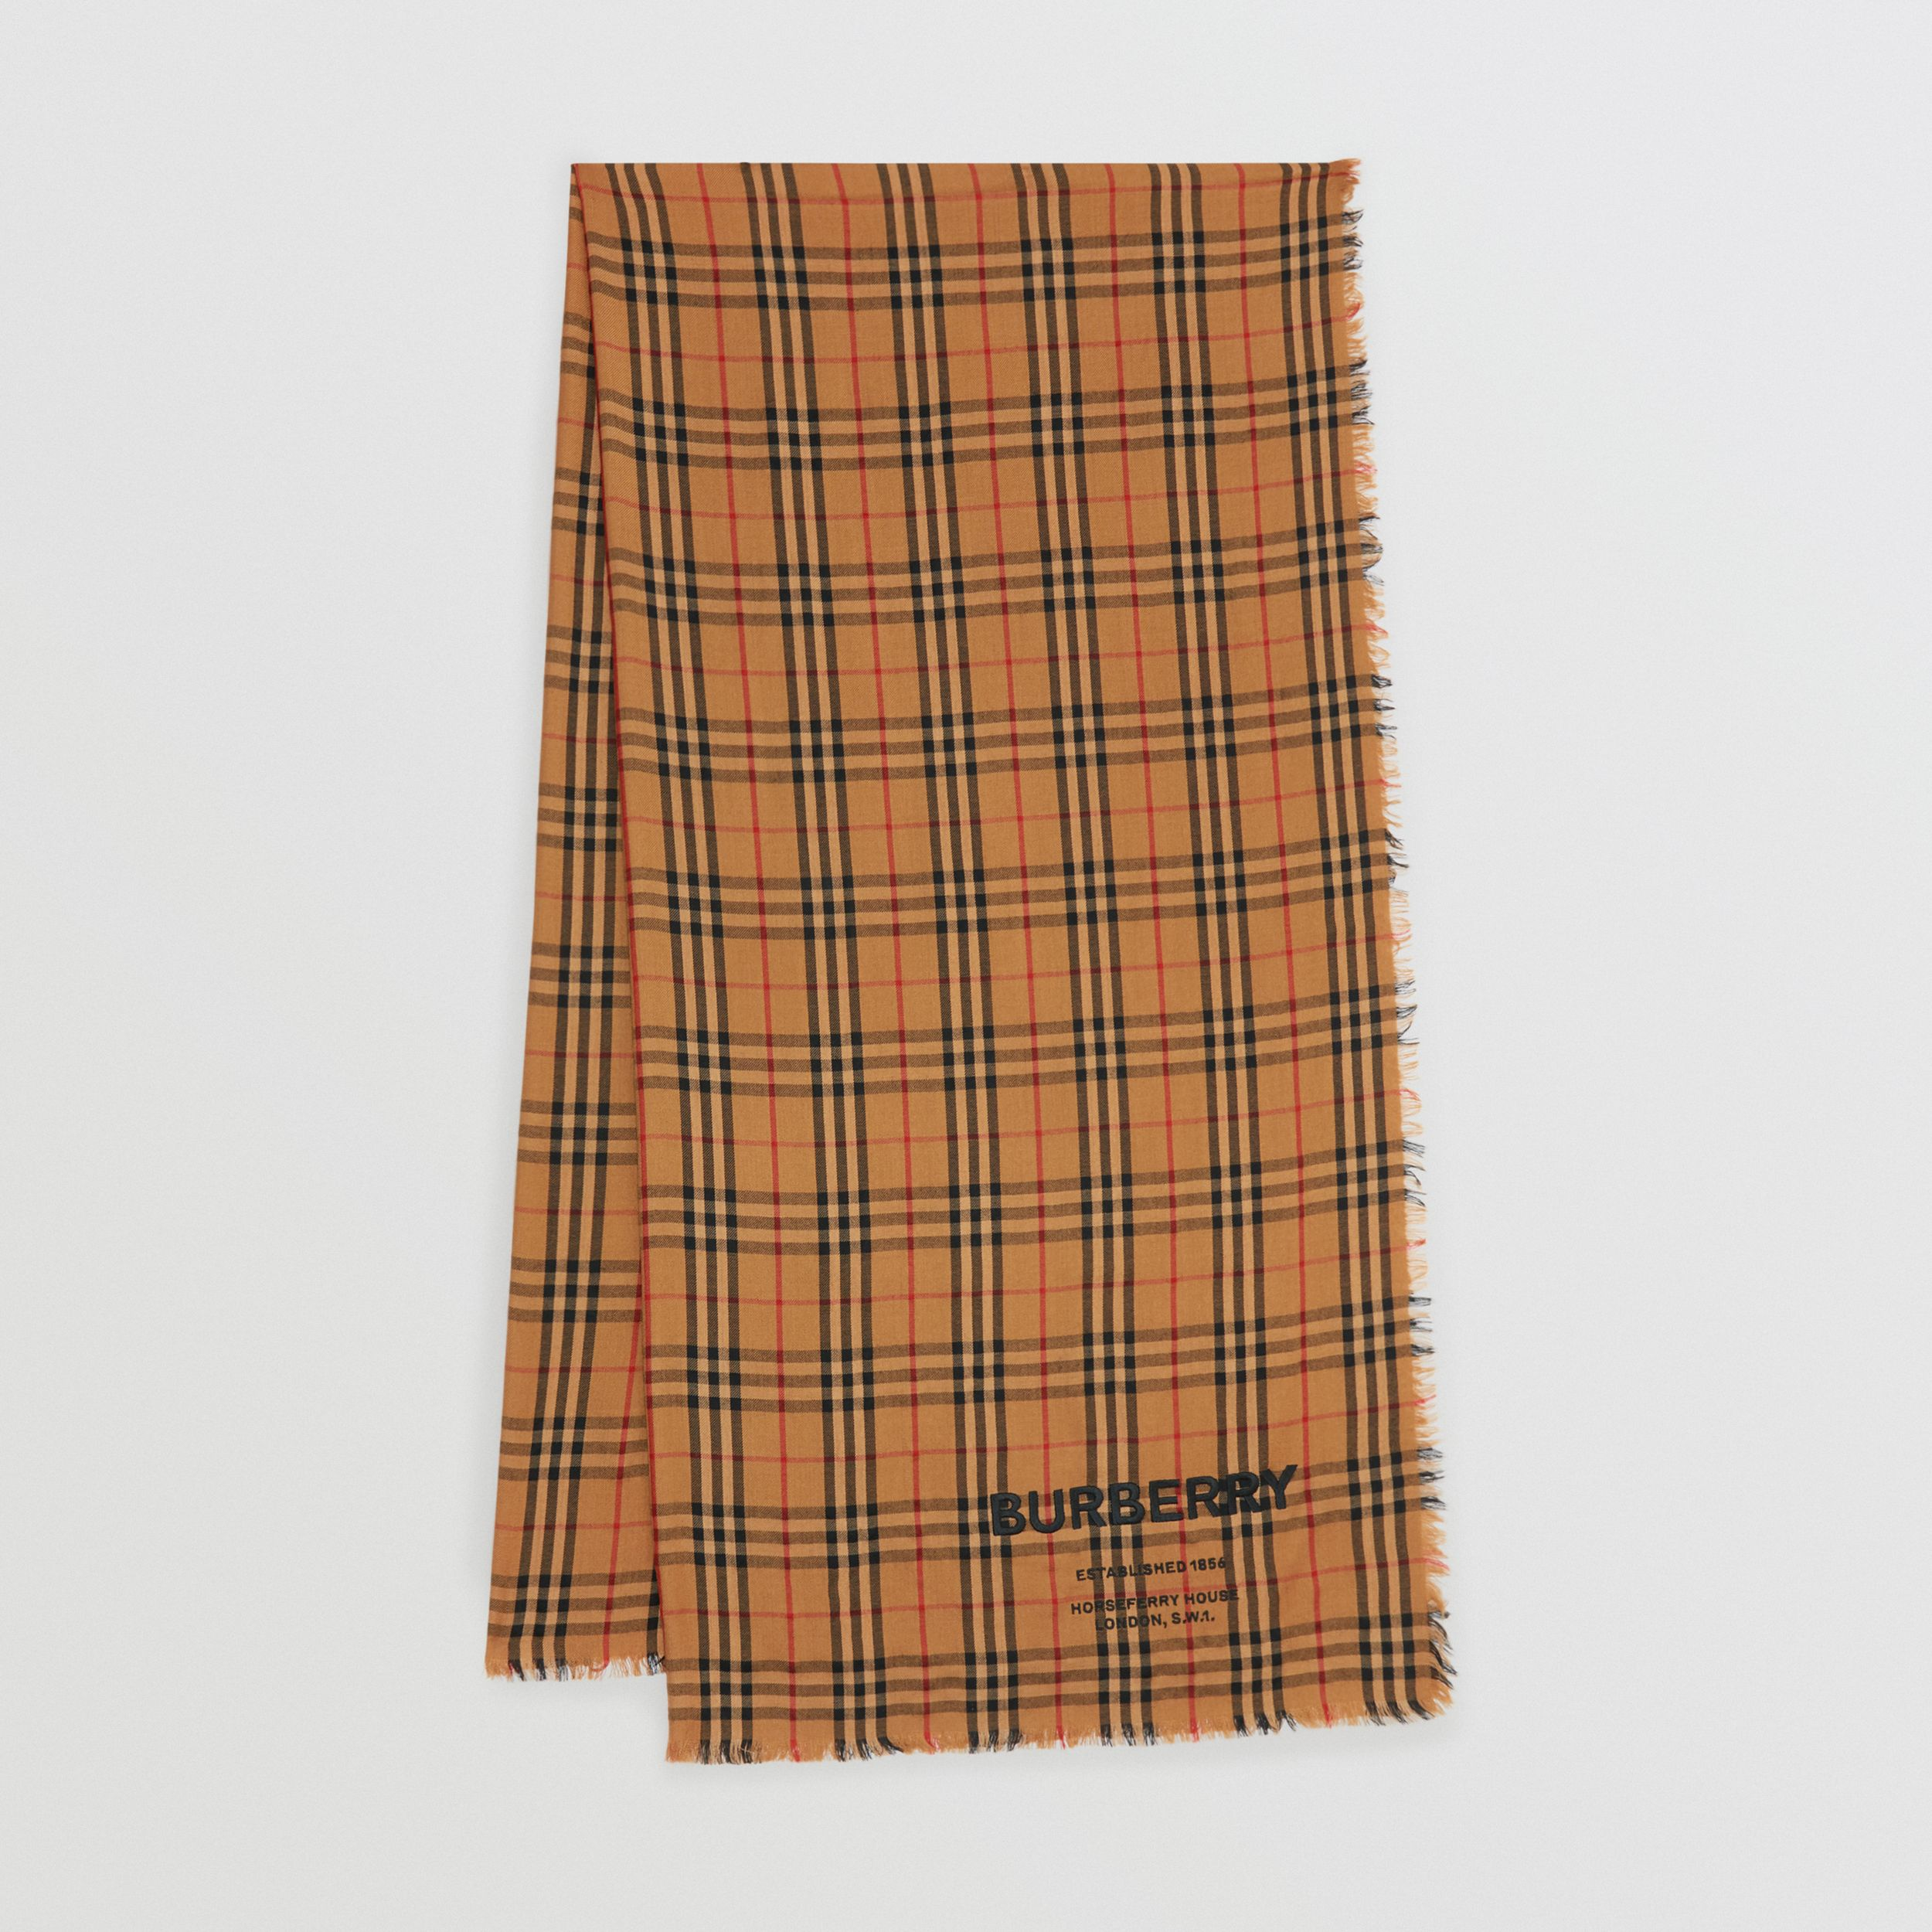 Embroidered Vintage Check Lightweight Cashmere Scarf in Overdyed Camel | Burberry - 1